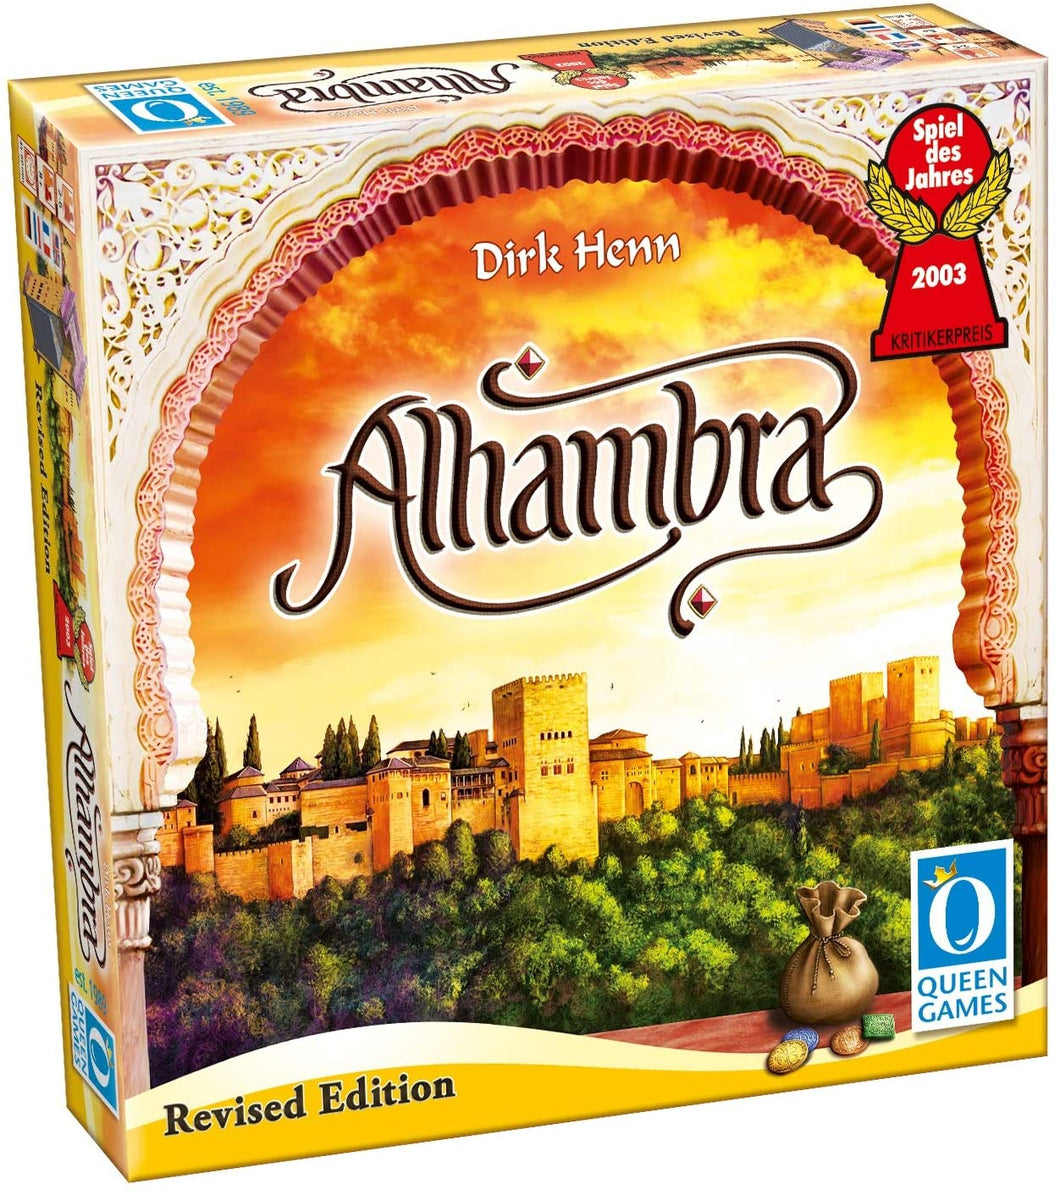 Alhambra board game box cover